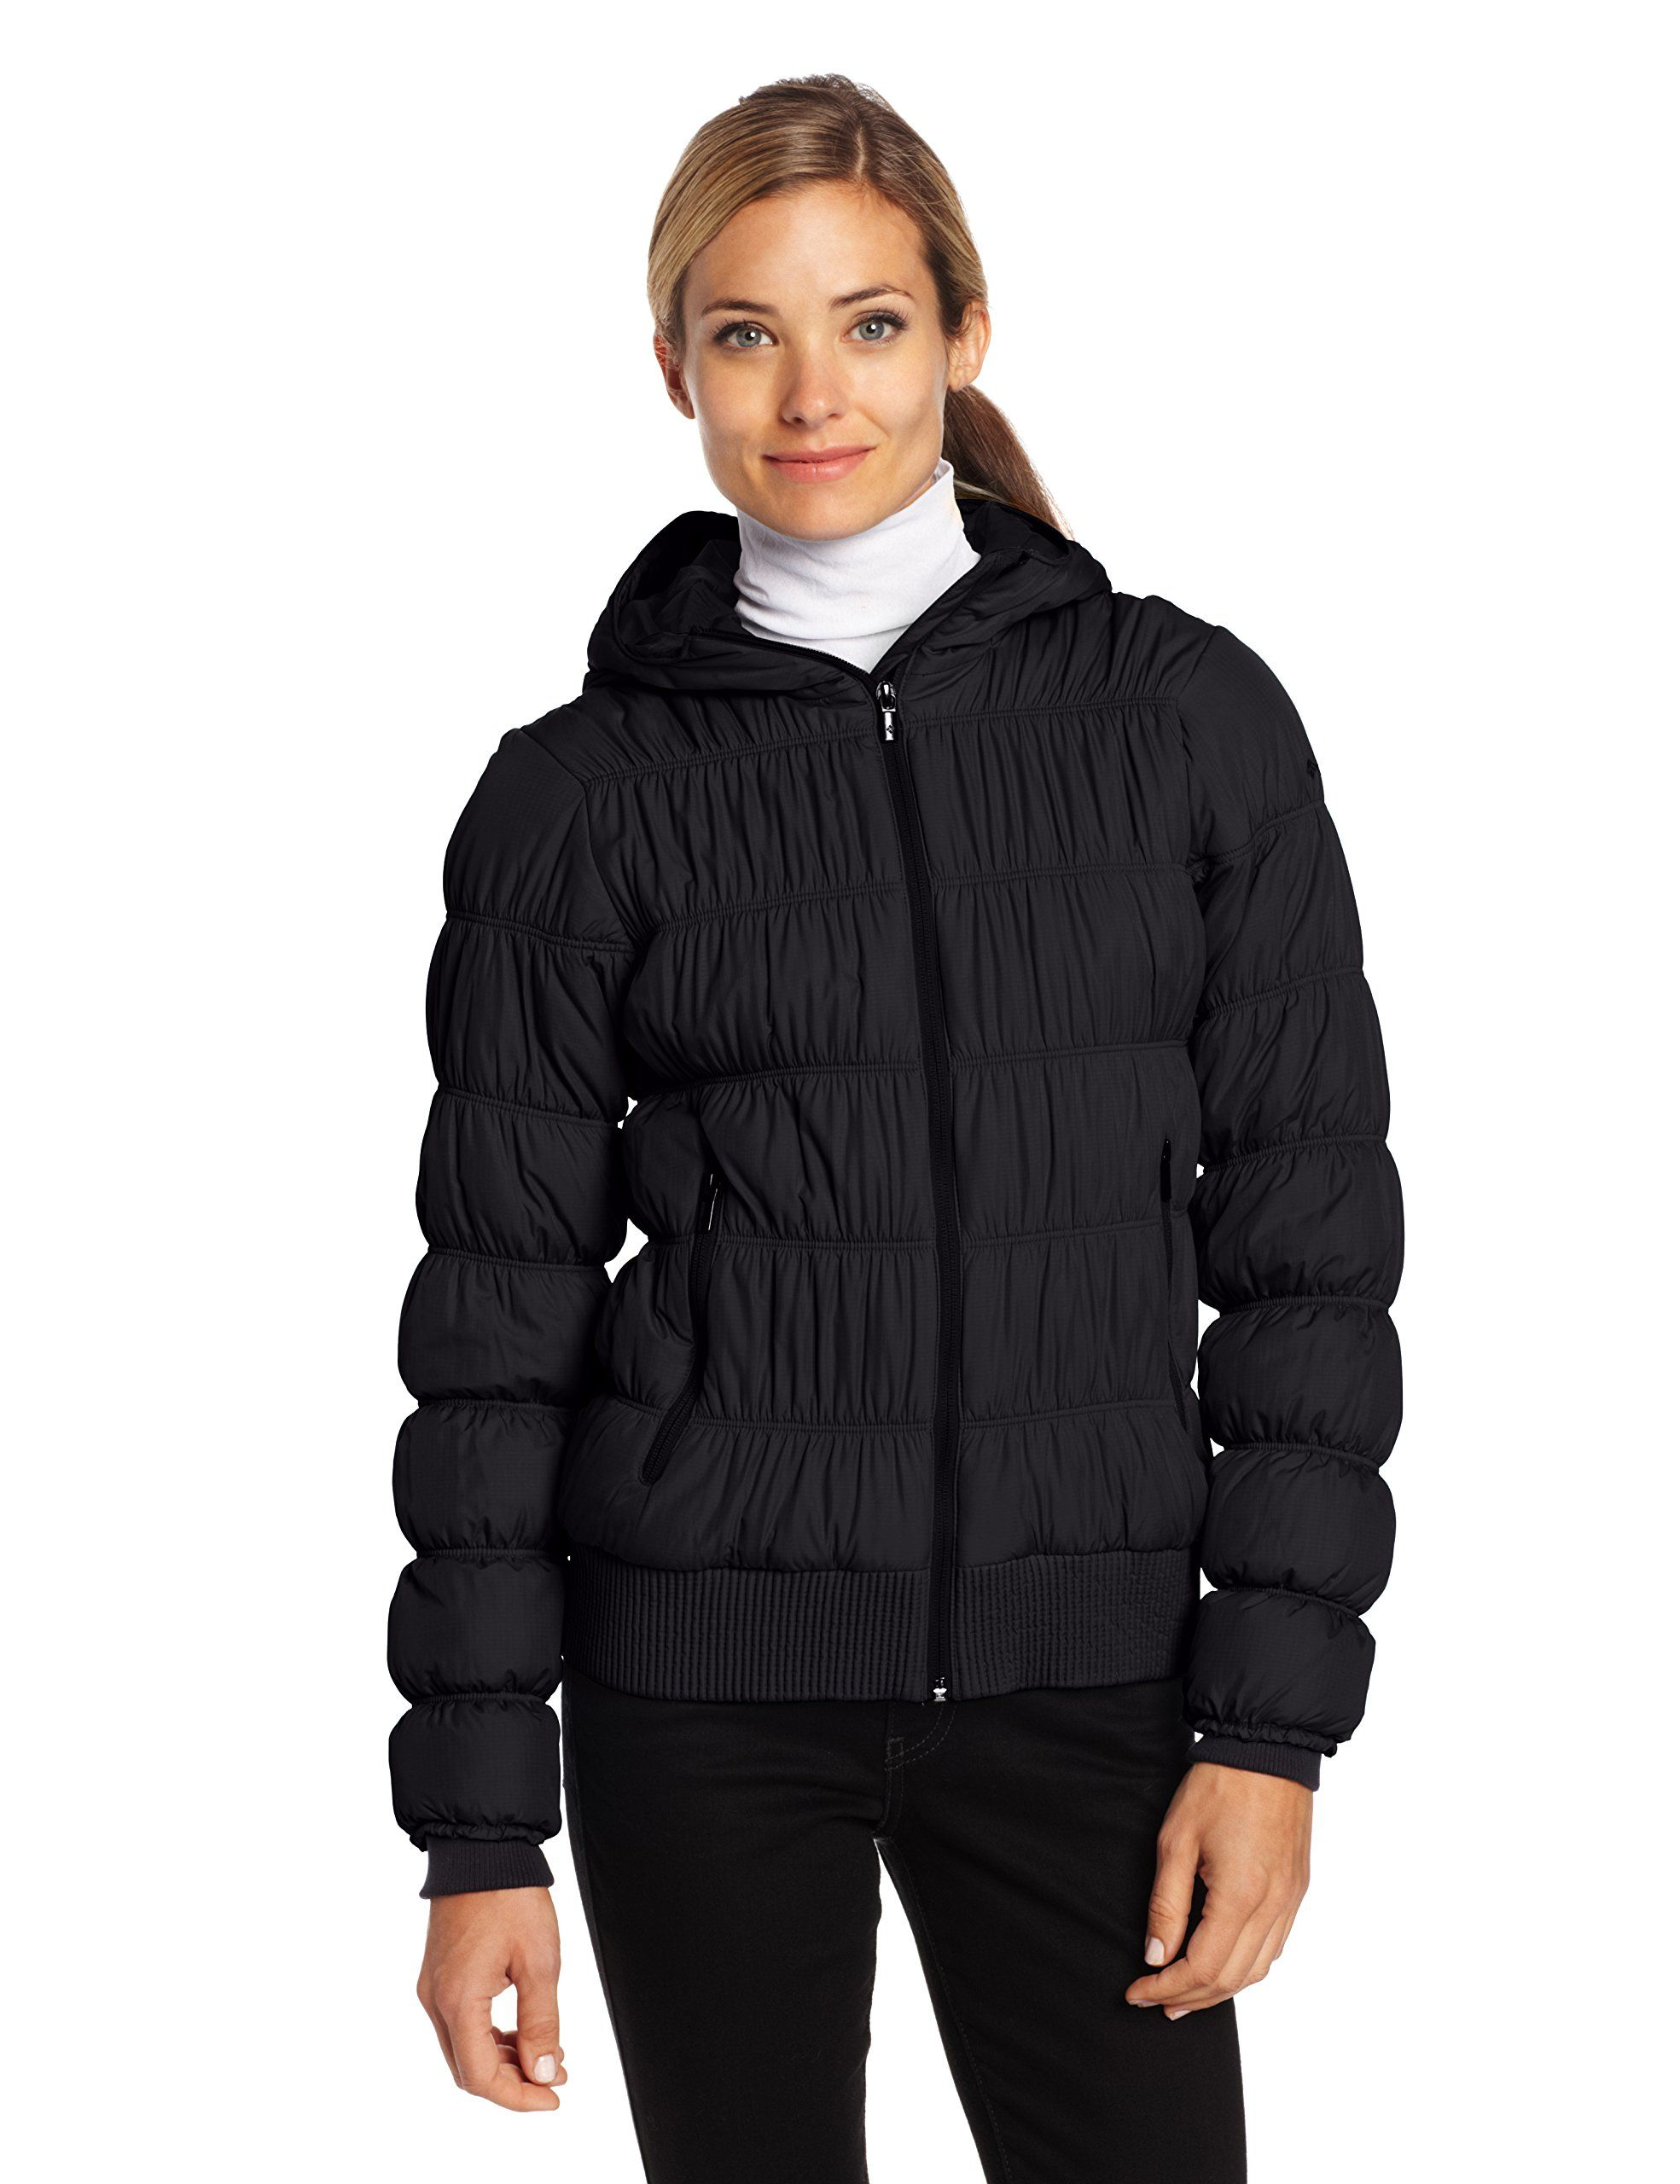 columbia women s chelsea station jacket very nice warm coat #2: a9735ba9a3a9a0c797bb374e311acca1